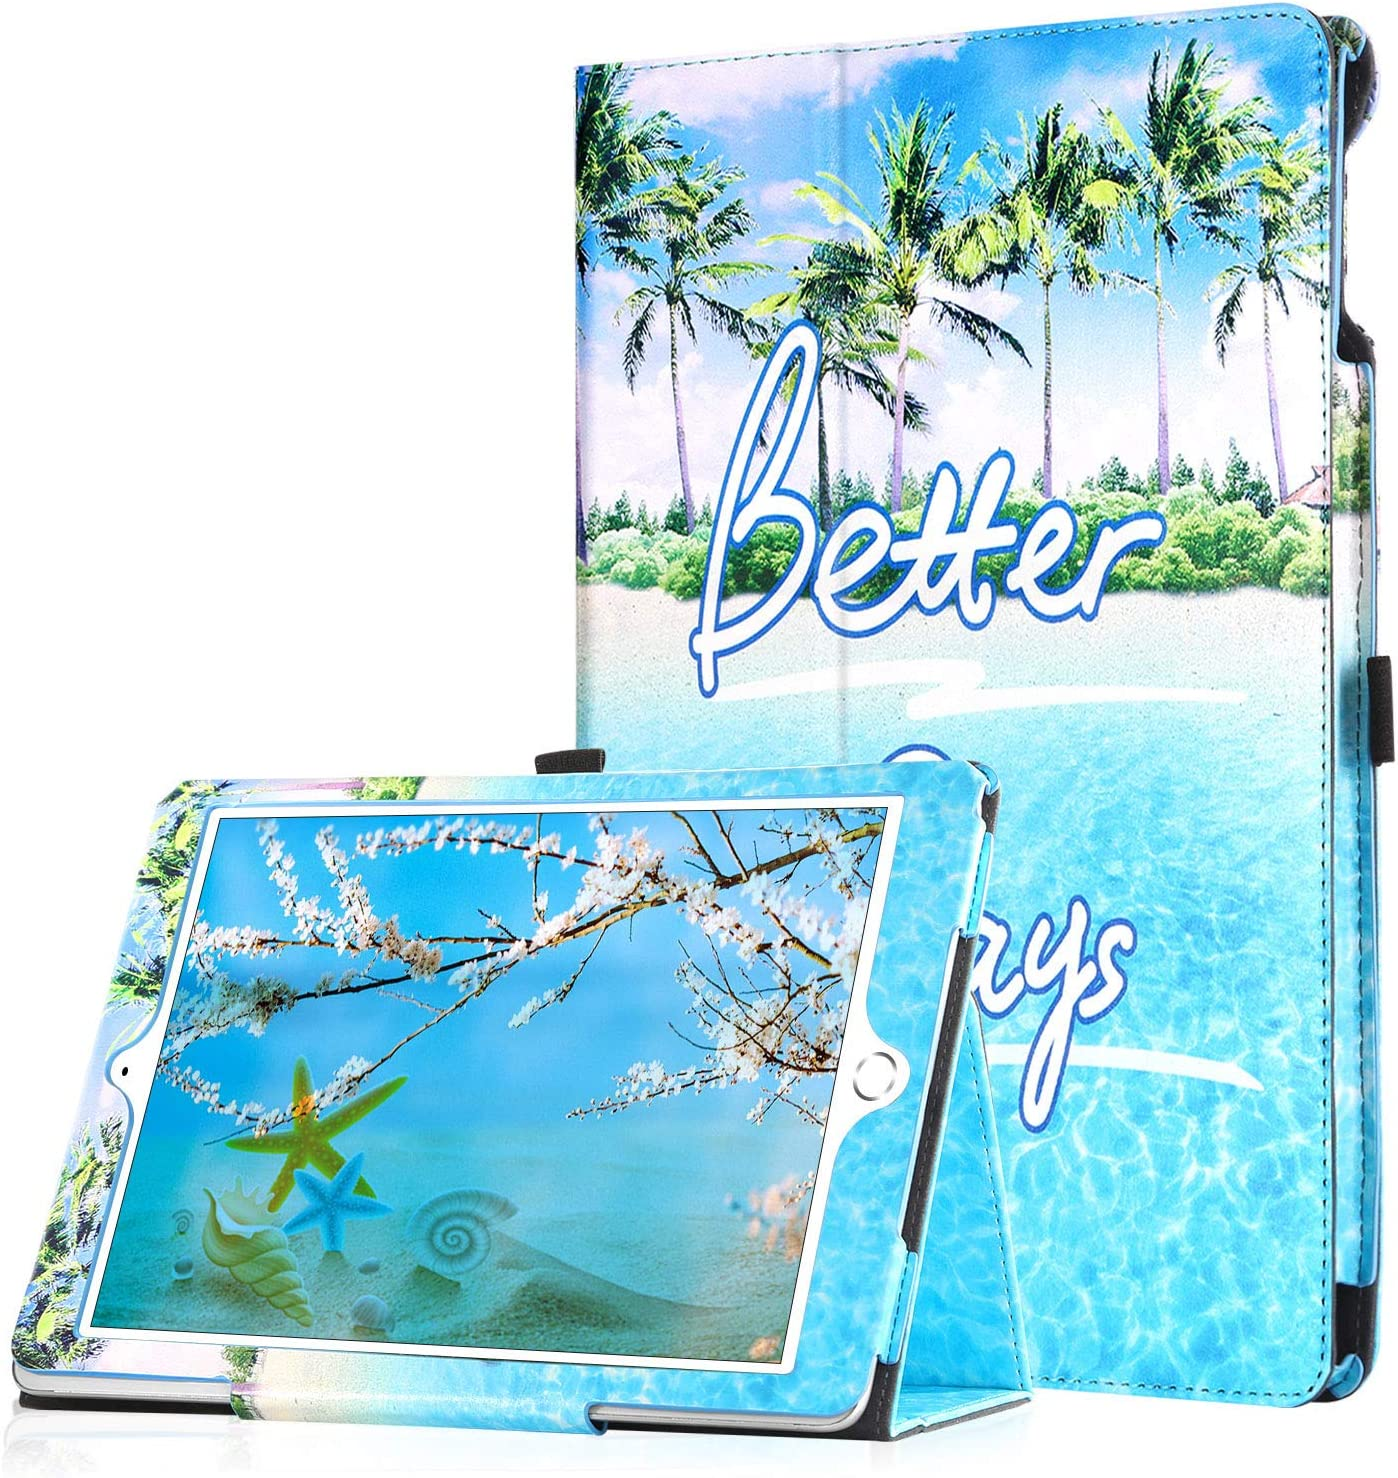 iPad Air 2 Case,iPad Air 1 Case,iPad 9.7 2018/2017 Case,BENTOBEN Fashionable Slim Faux Leather Folio Stand Smart Tablet Cover Auto Wake/Sleep Protective iPad Case for Air 1/2,iPad 9.7 2018/2017, Blue